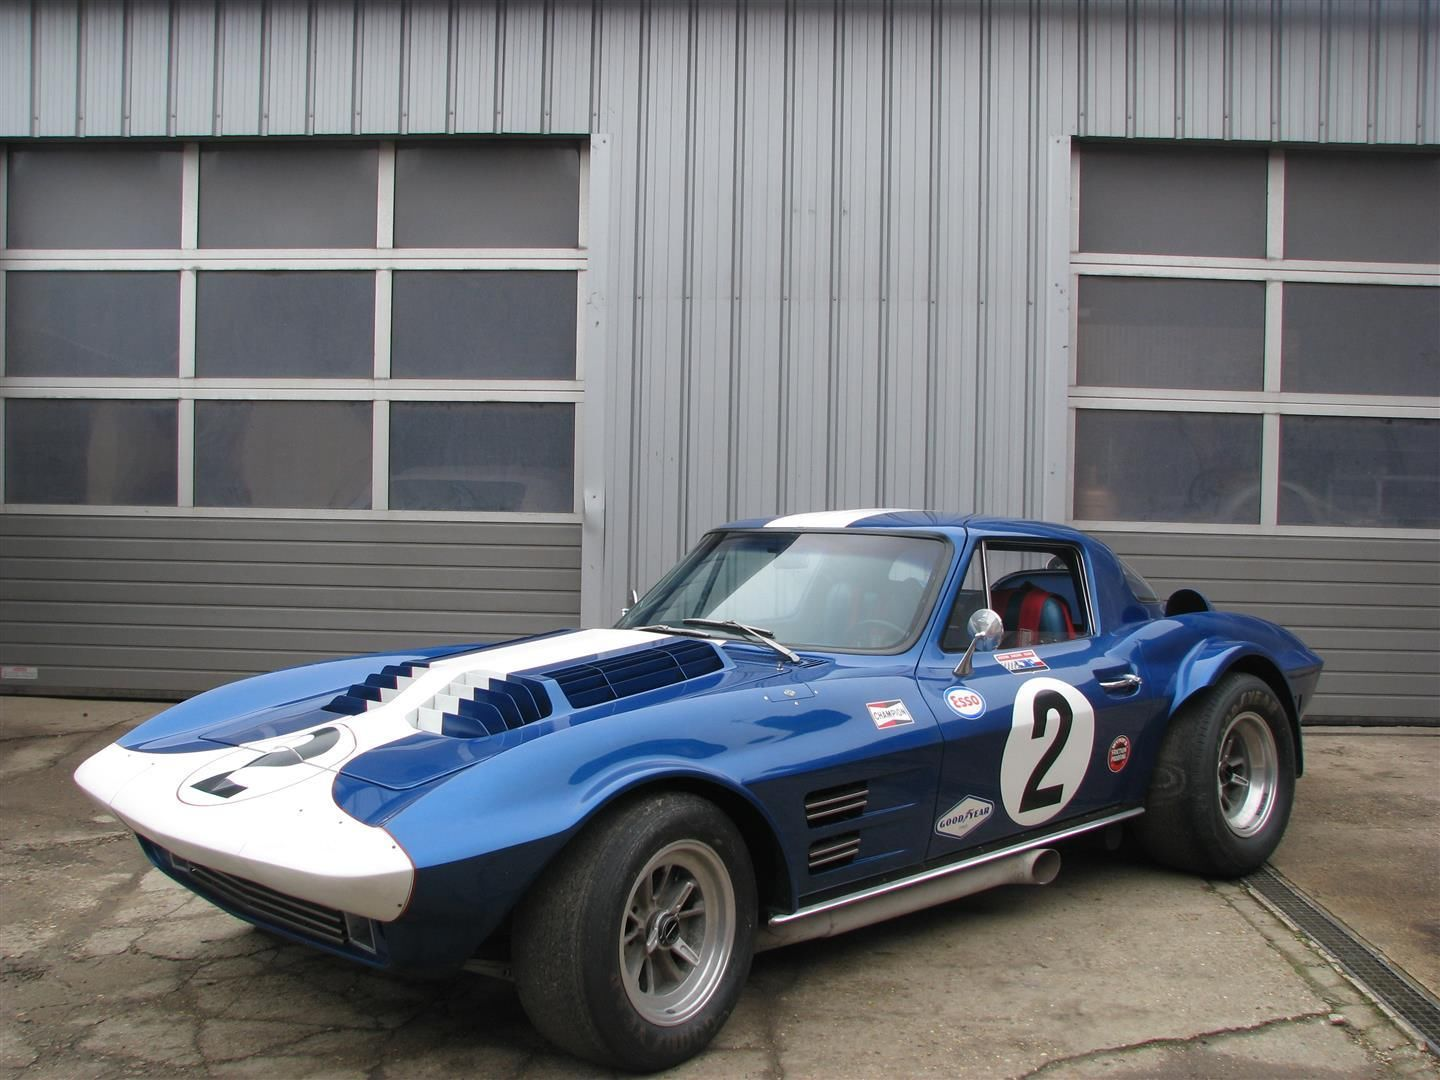 1963 Chevrolet Corvette Grand Sport Replica For Sale